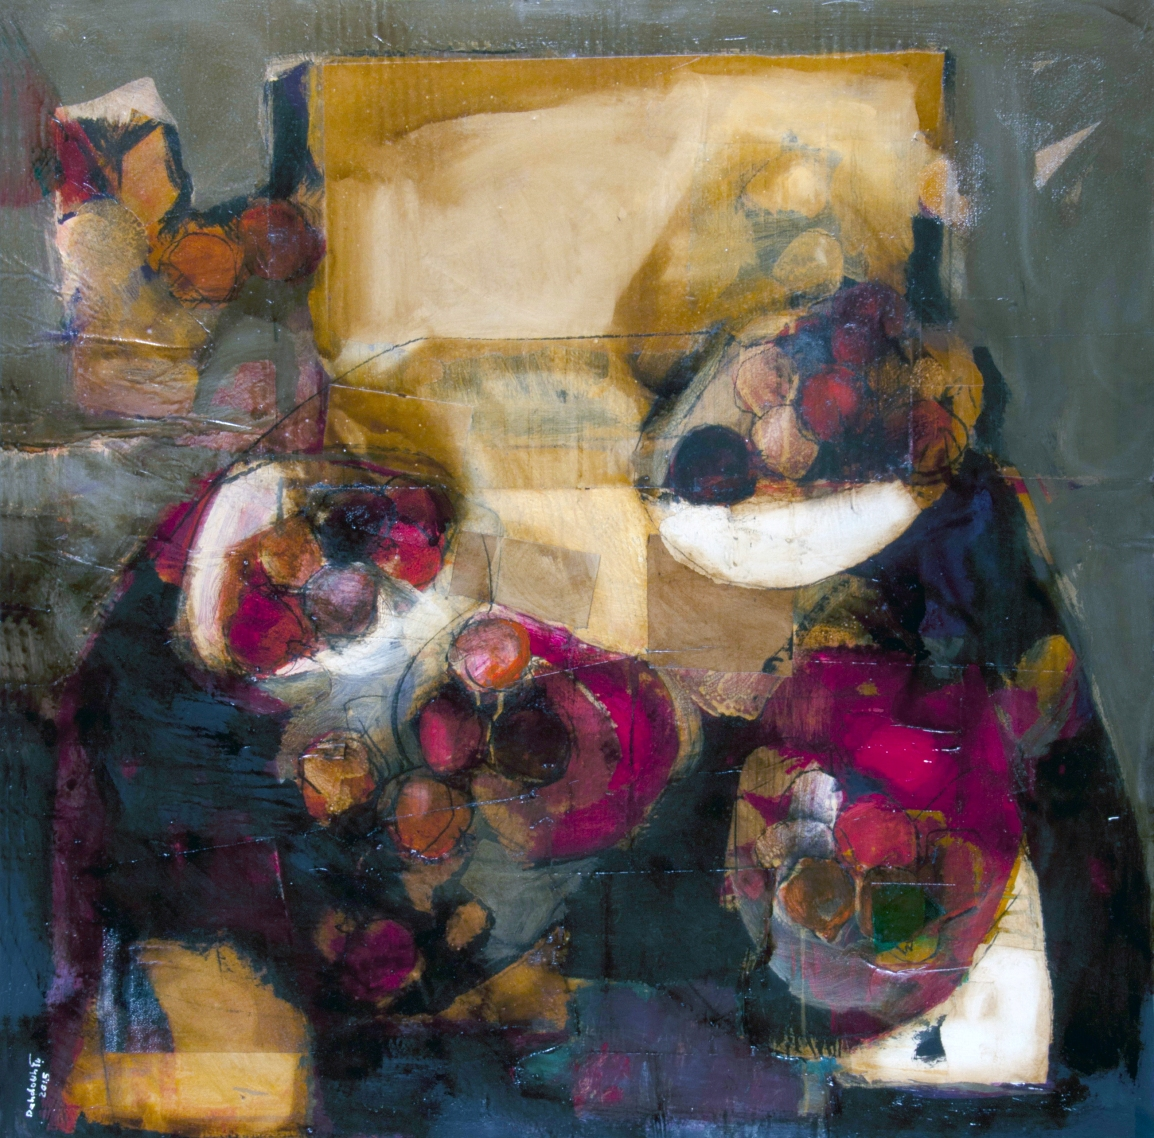 Dahdouh-Still Life-4-100X100cm-Mixed Media on canvas -2015